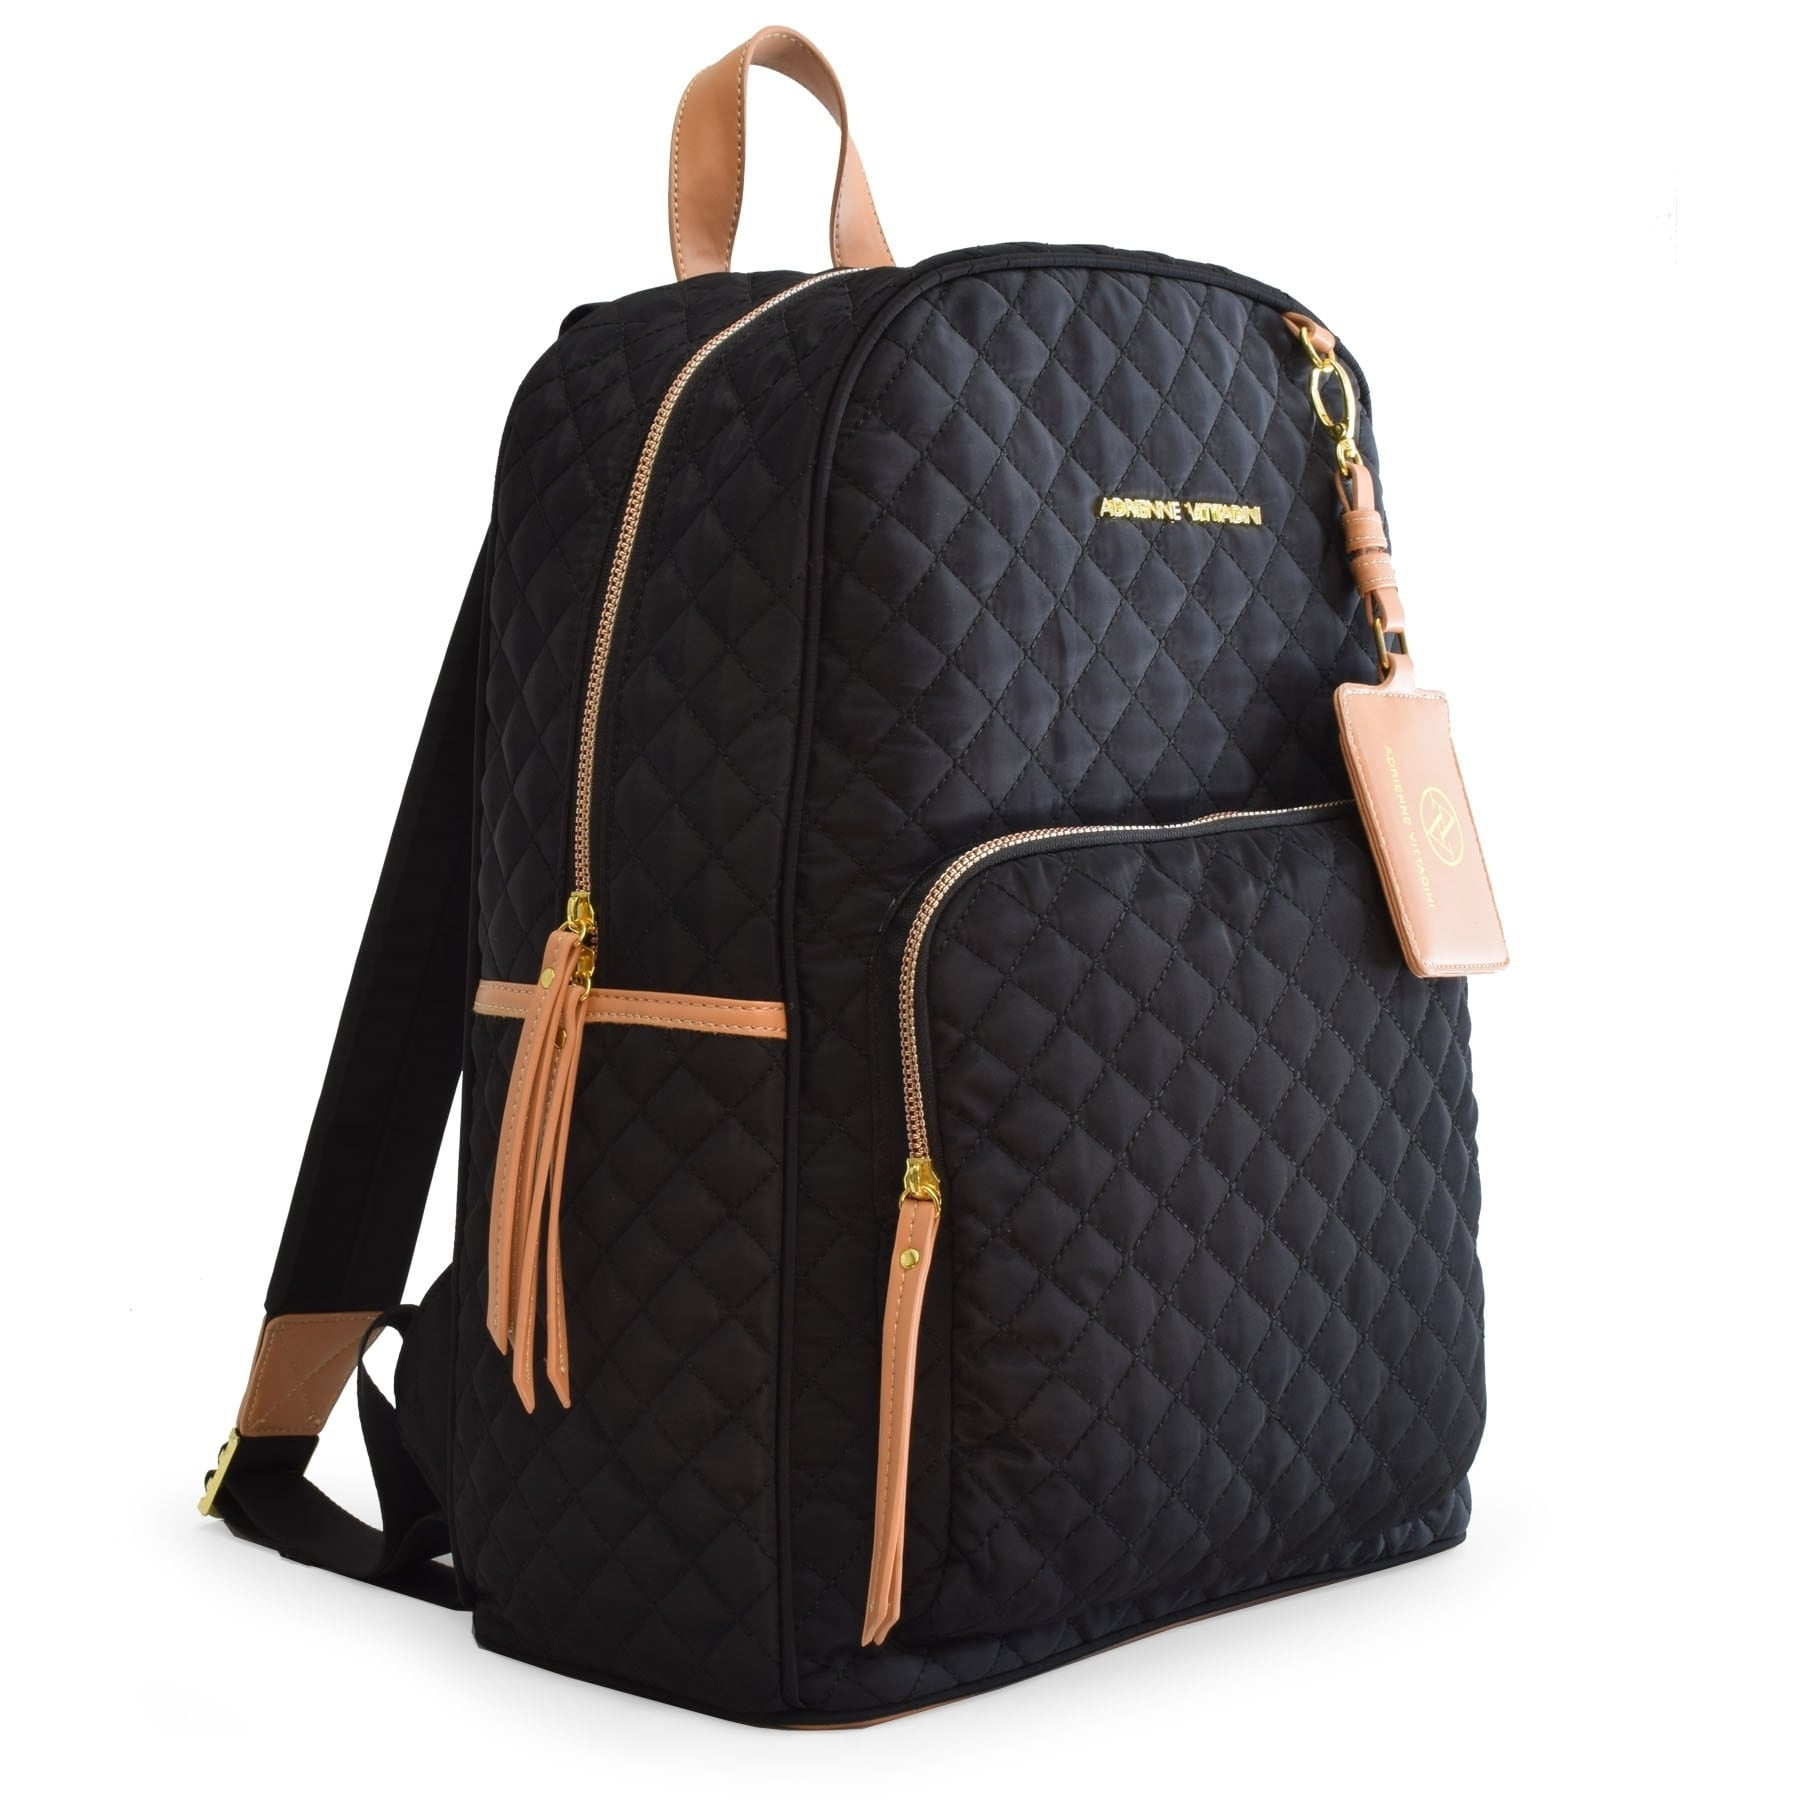 9515a5da7d21 Adrienne Vittadini Quilted Backpack with 13 Inch Padded Laptop Sleeve-Black